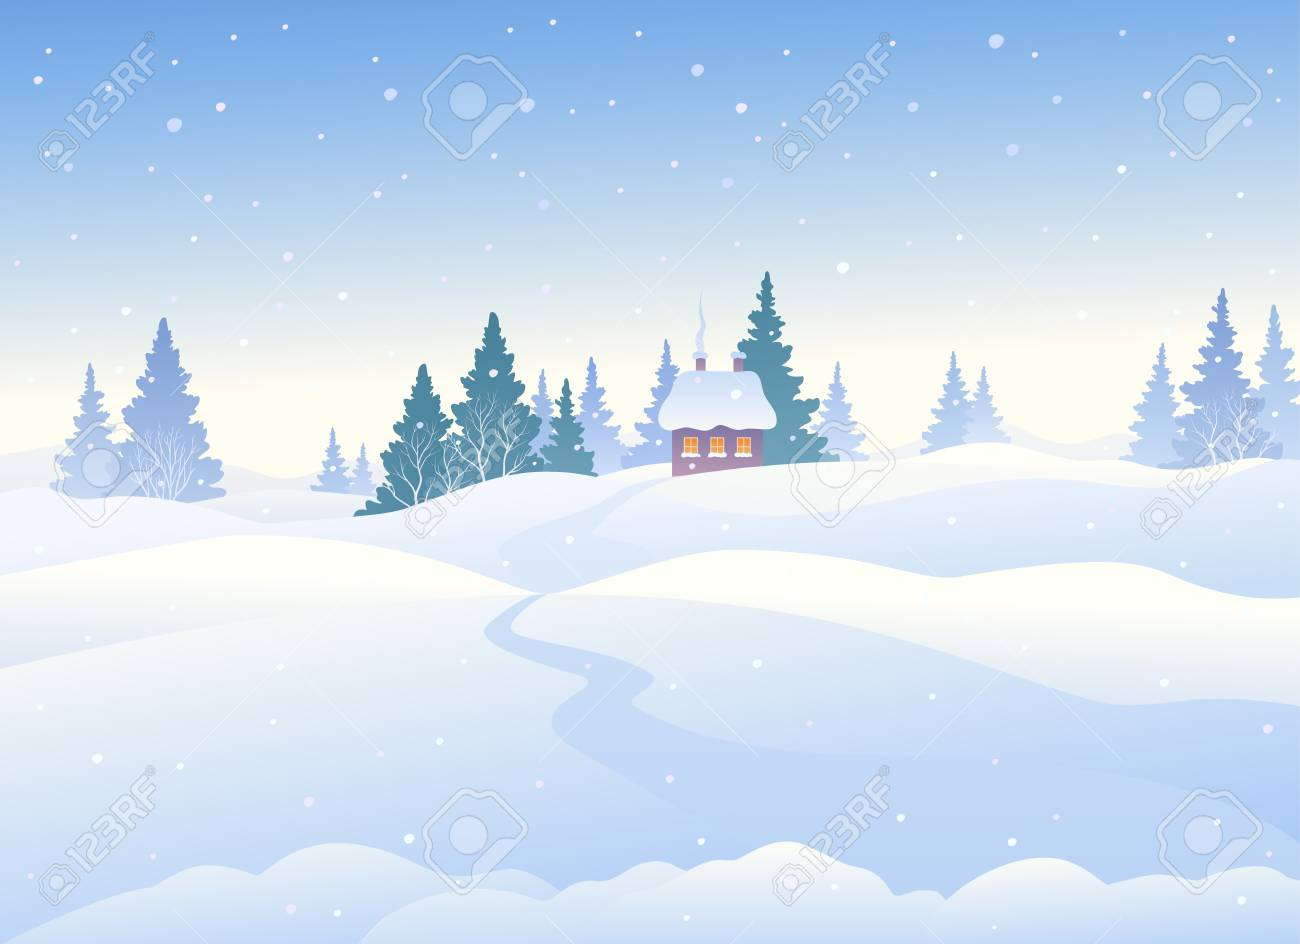 Winter clipart background 4 » Clipart Station.